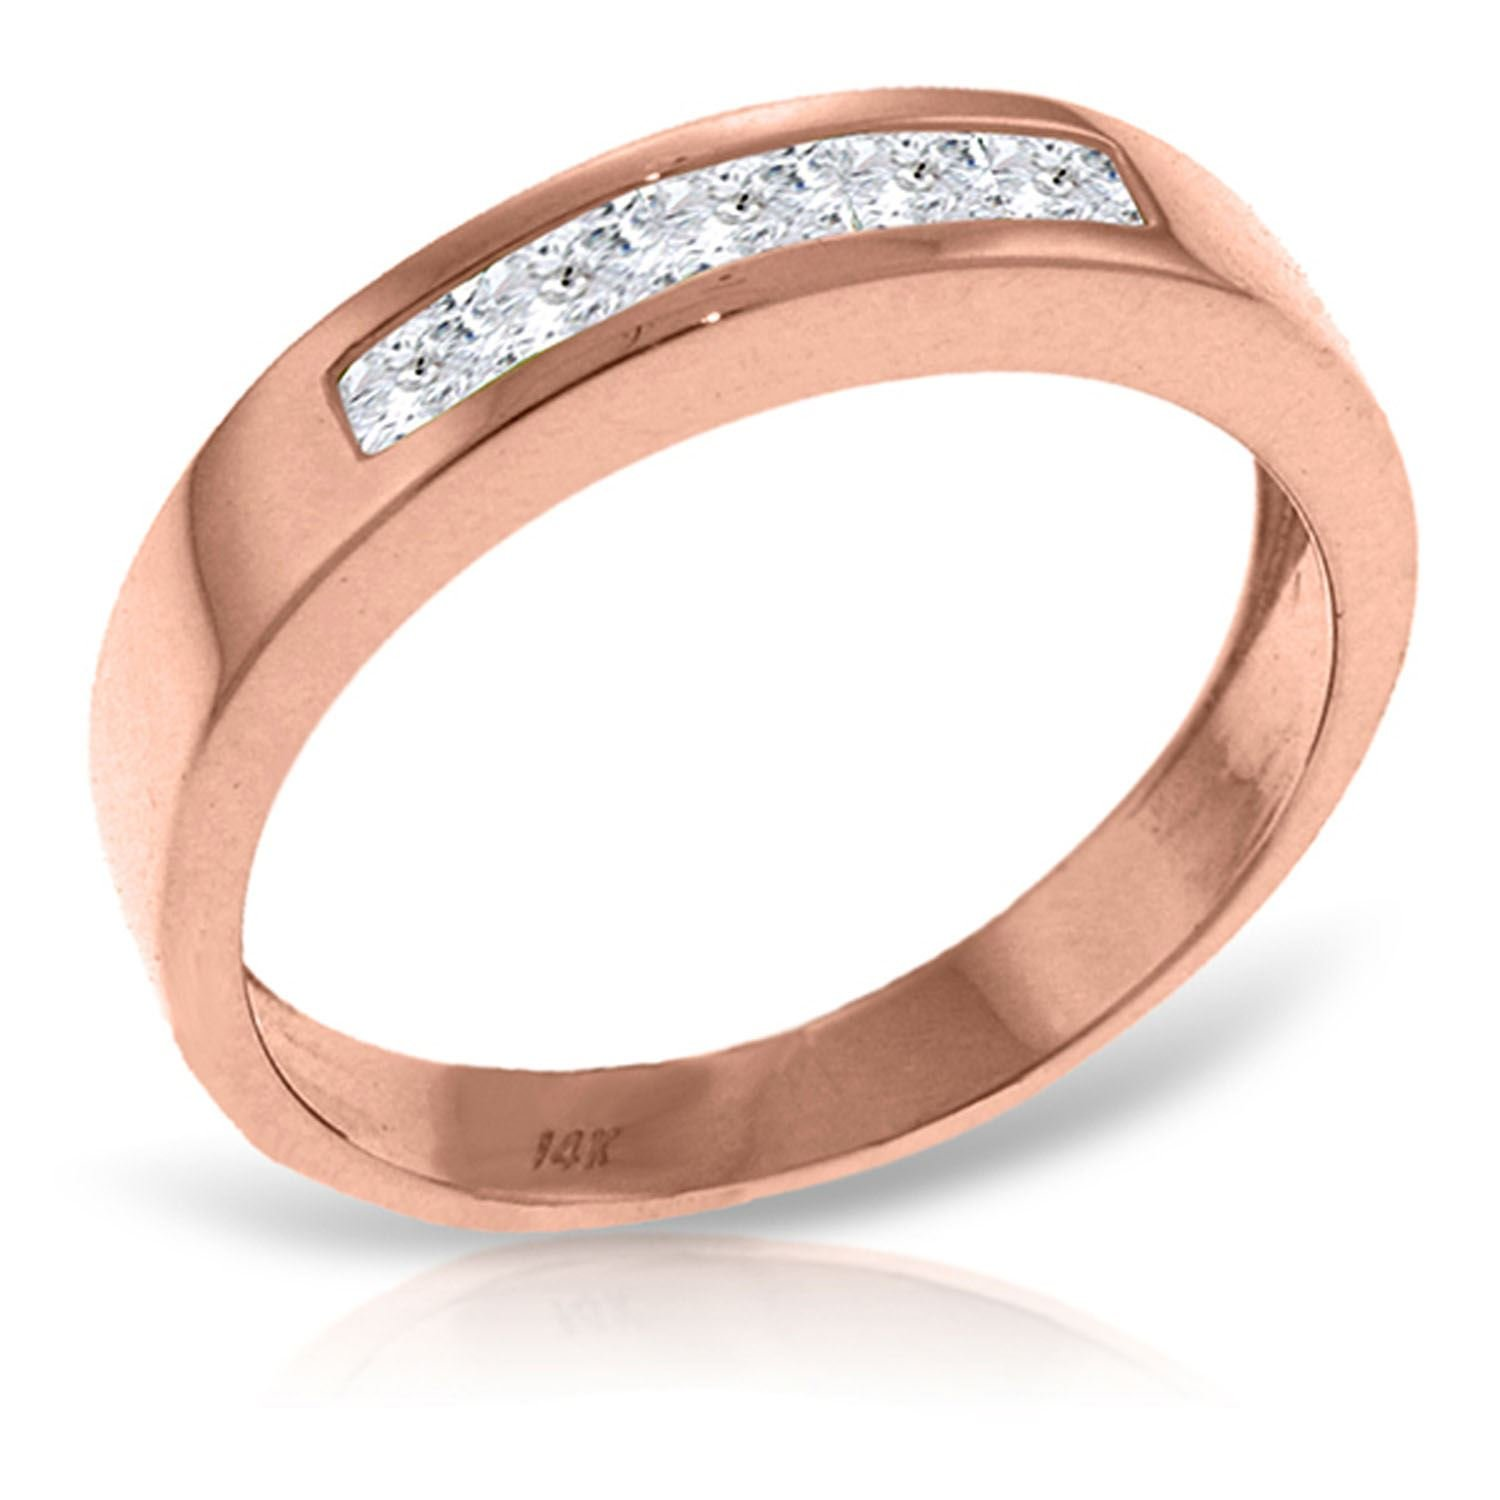 ALARRI 14K Solid Rose Gold Rings w/ Natural Rose Topaz With Ring Size 8